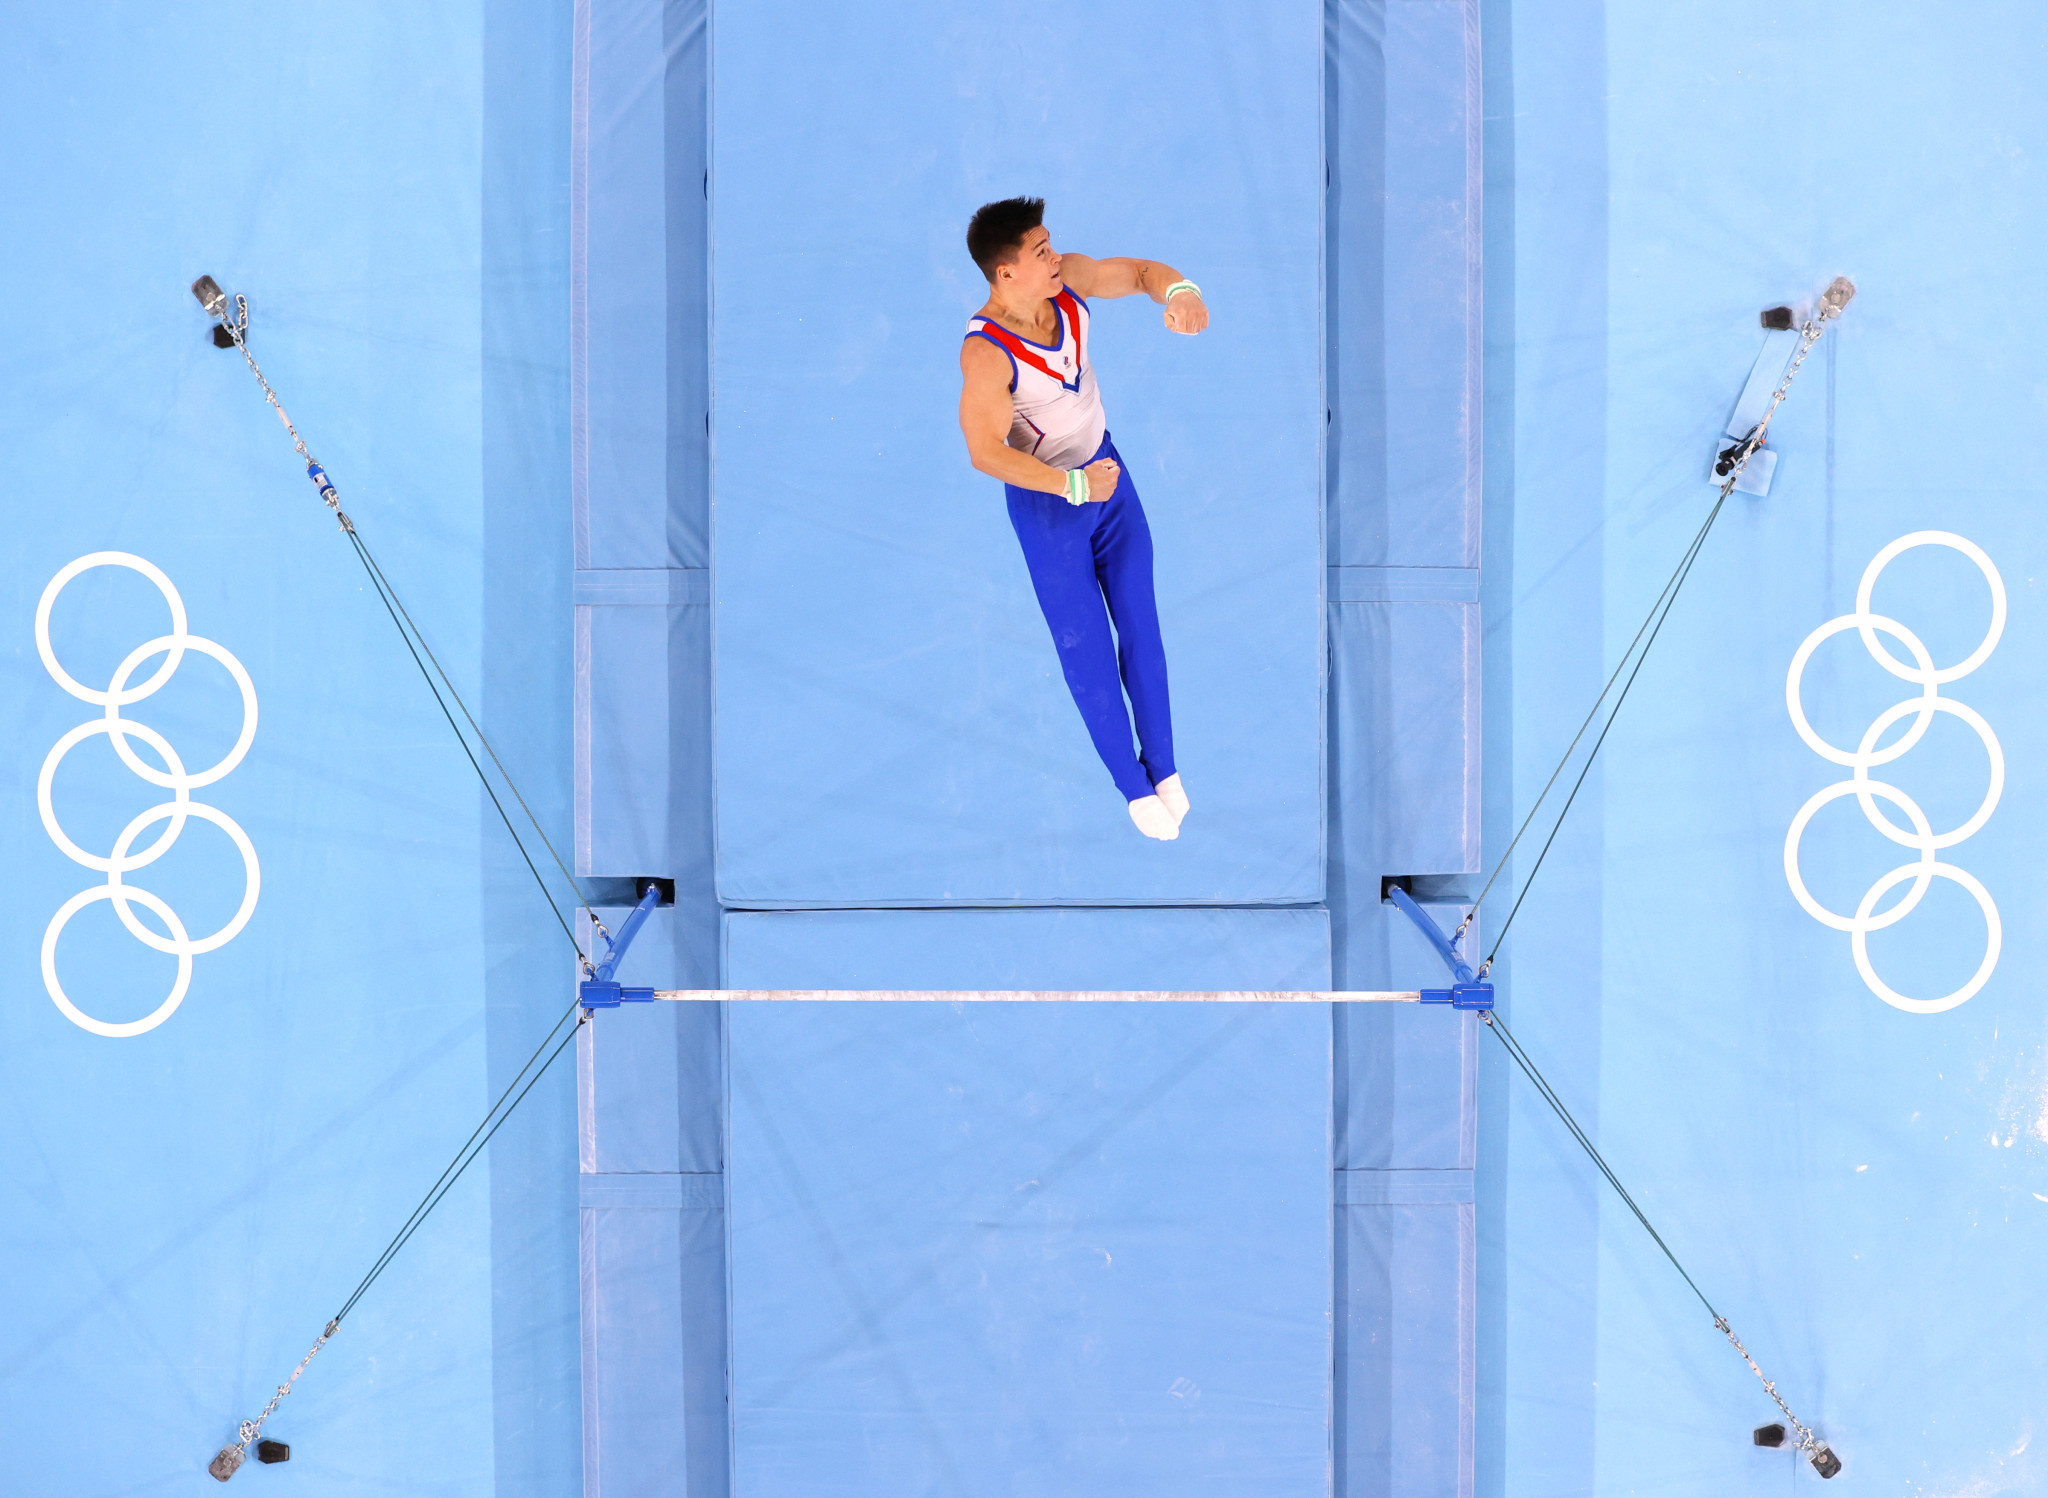 Nikita Nagornyy's performance on the horizontal bar helped the ROC team to an overall score of 262.500 in the men's artistic team all-around event at Tokyo 2020, securing them the gold medal ©Getty Images